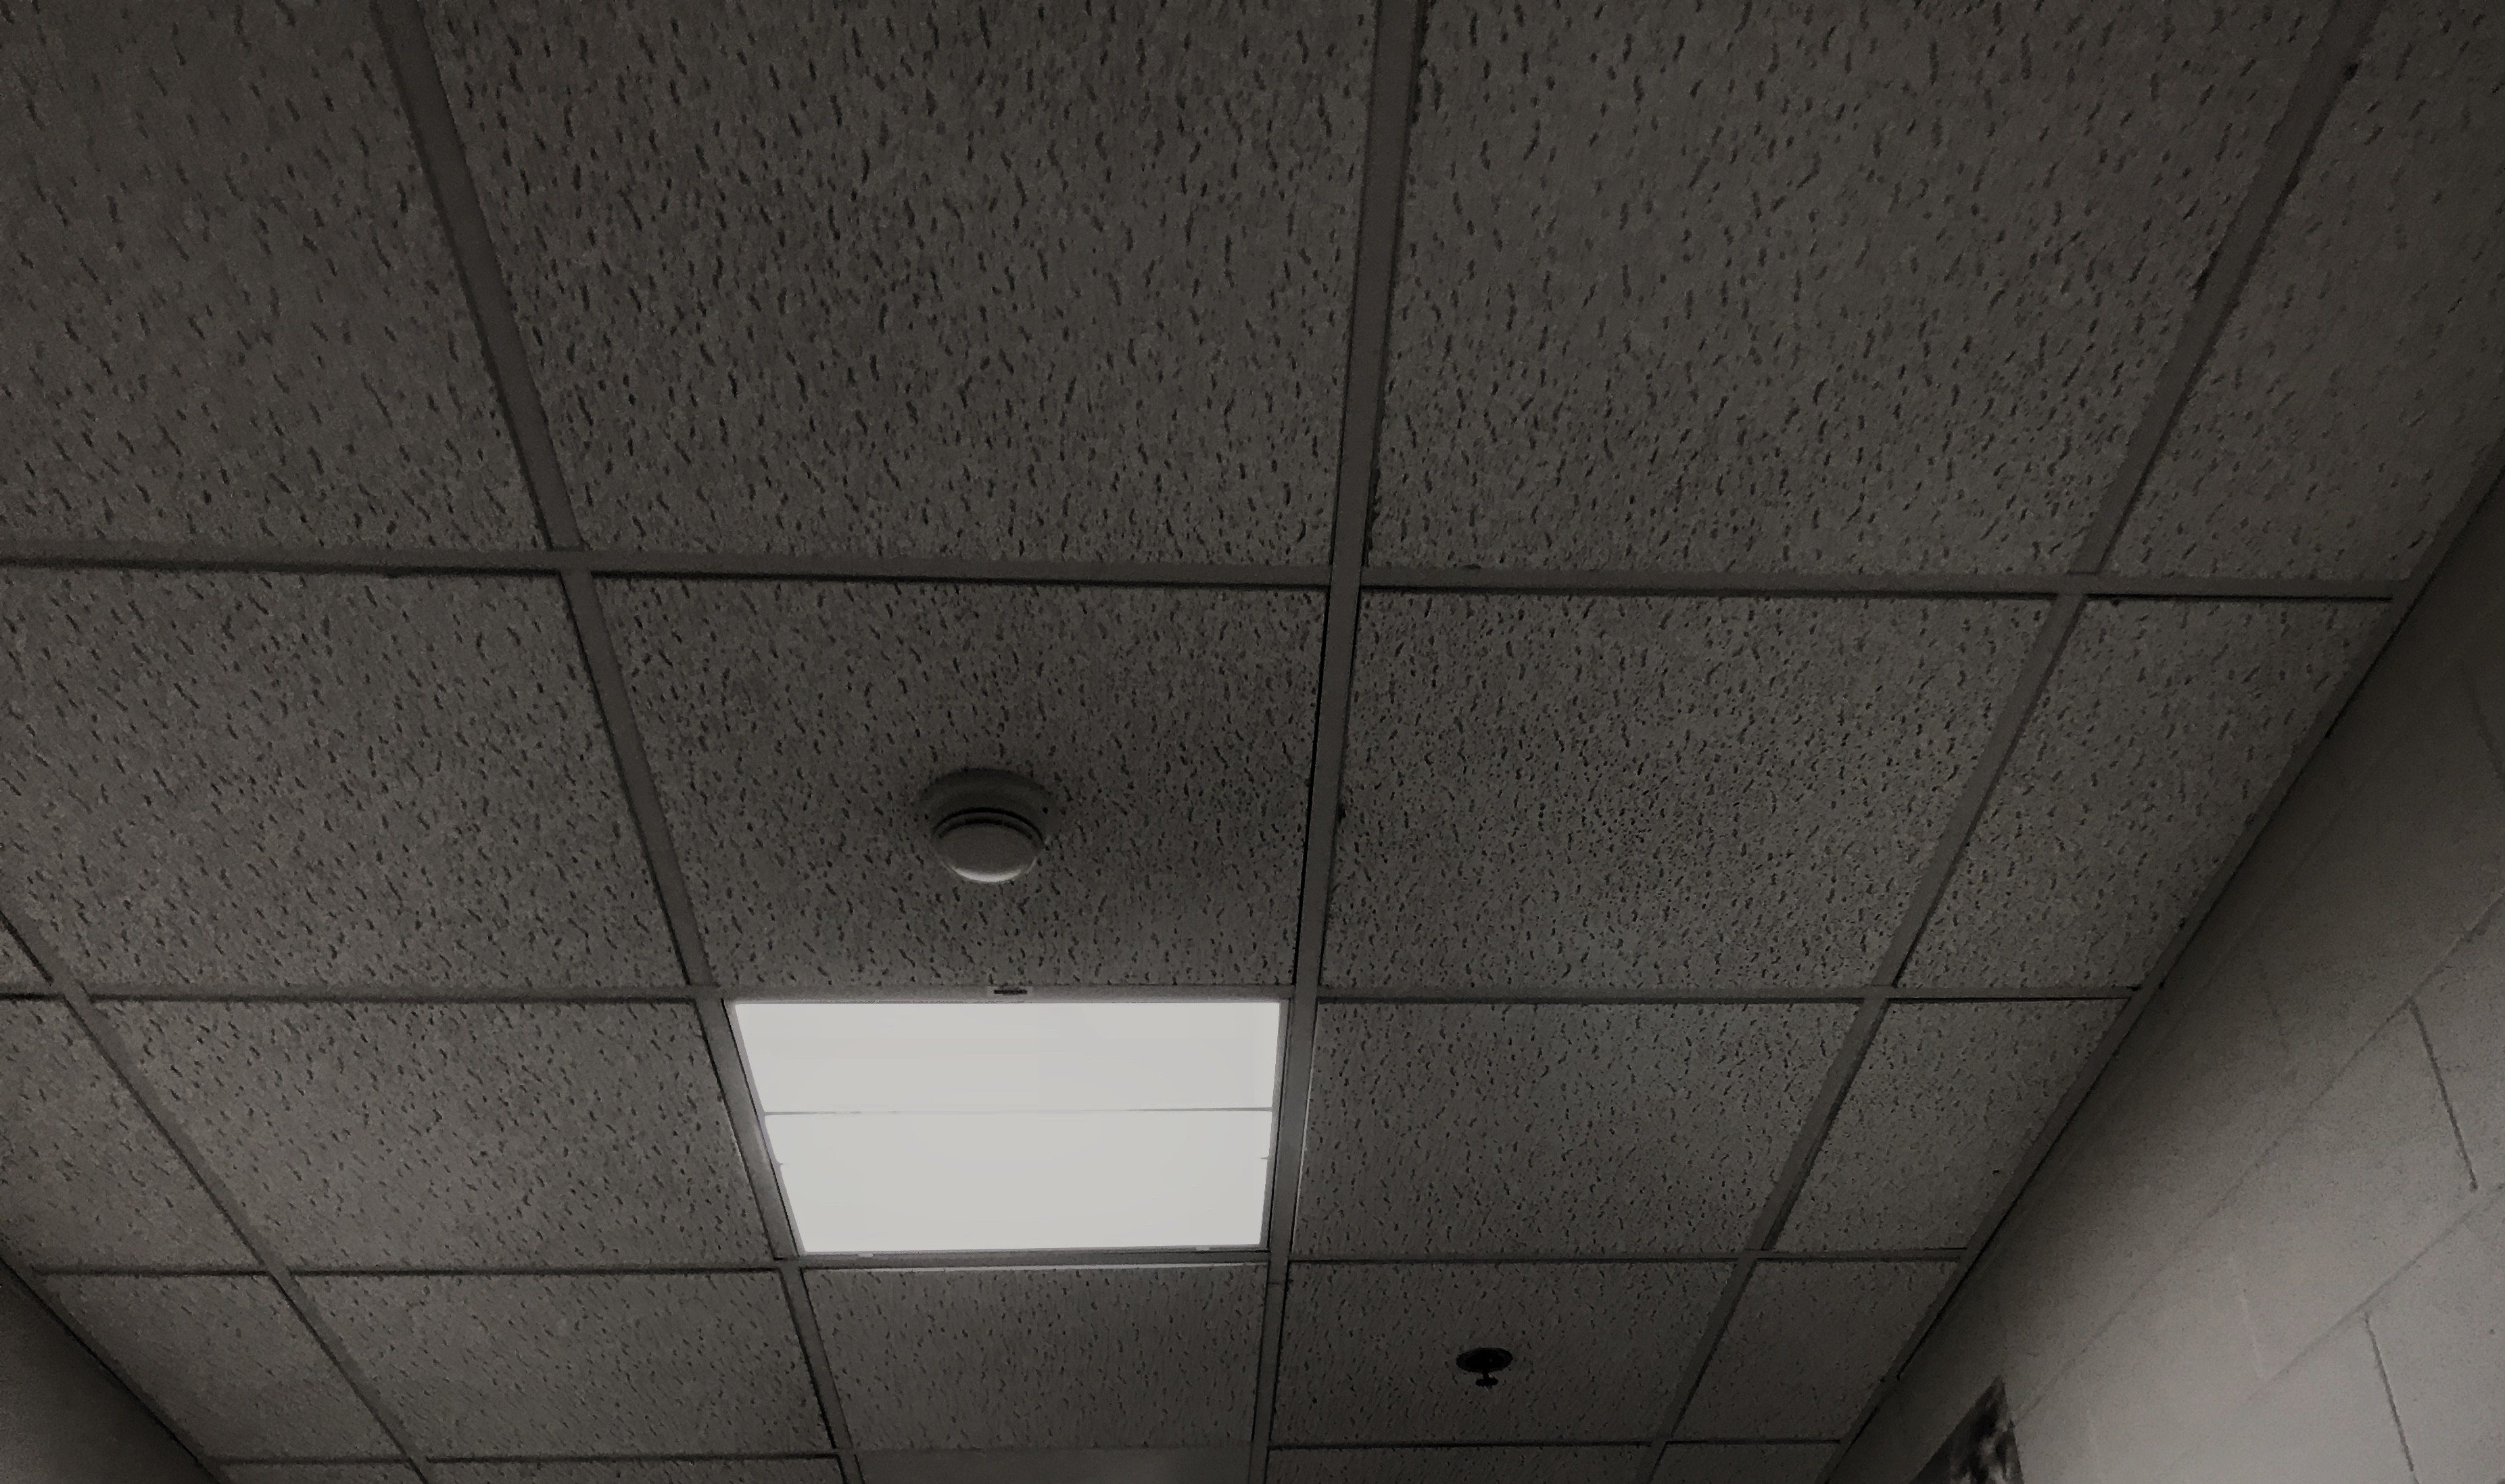 I Was Hovering Just Below the Hospital Ceiling, Contemplating My Death